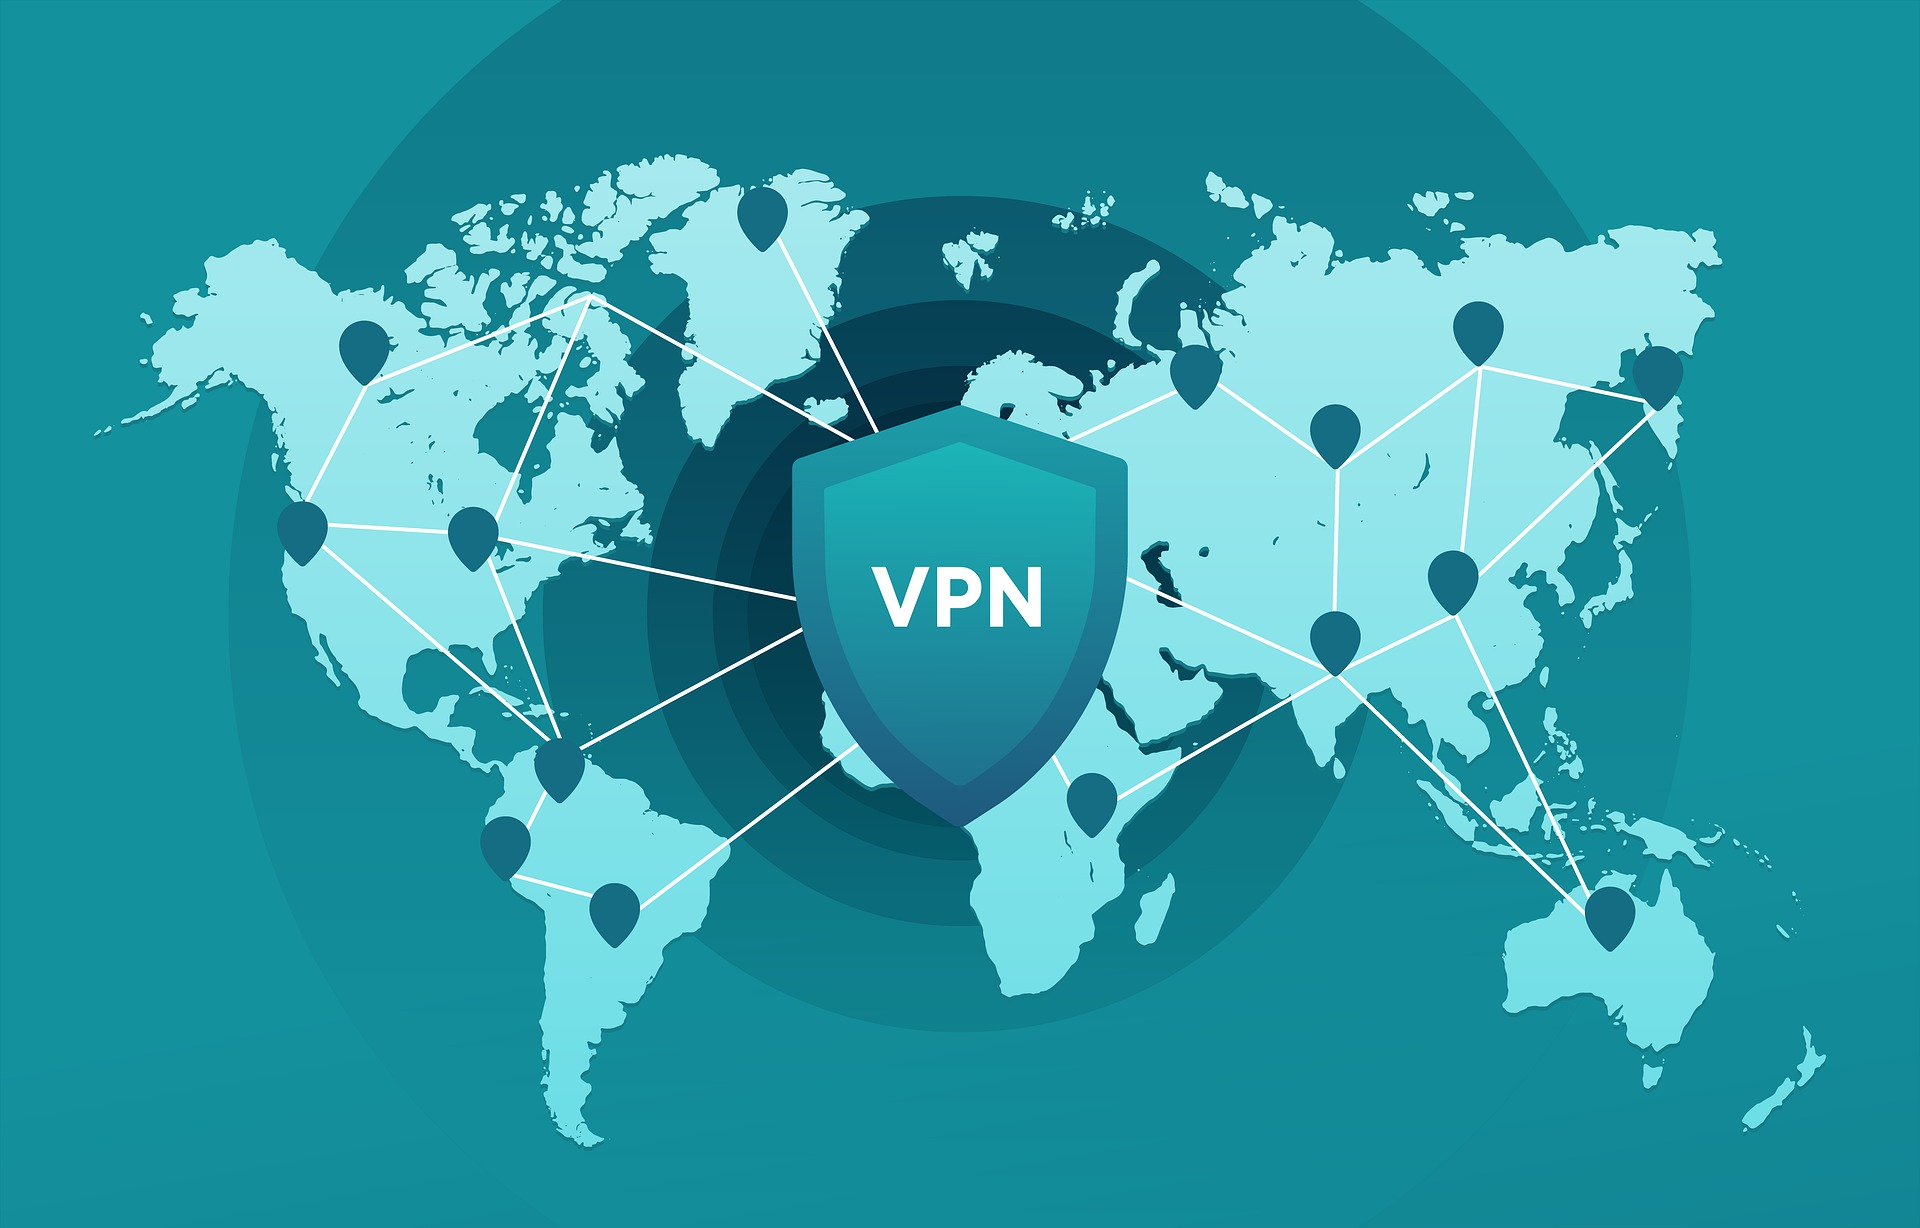 What are the Advantages of using a VPN?